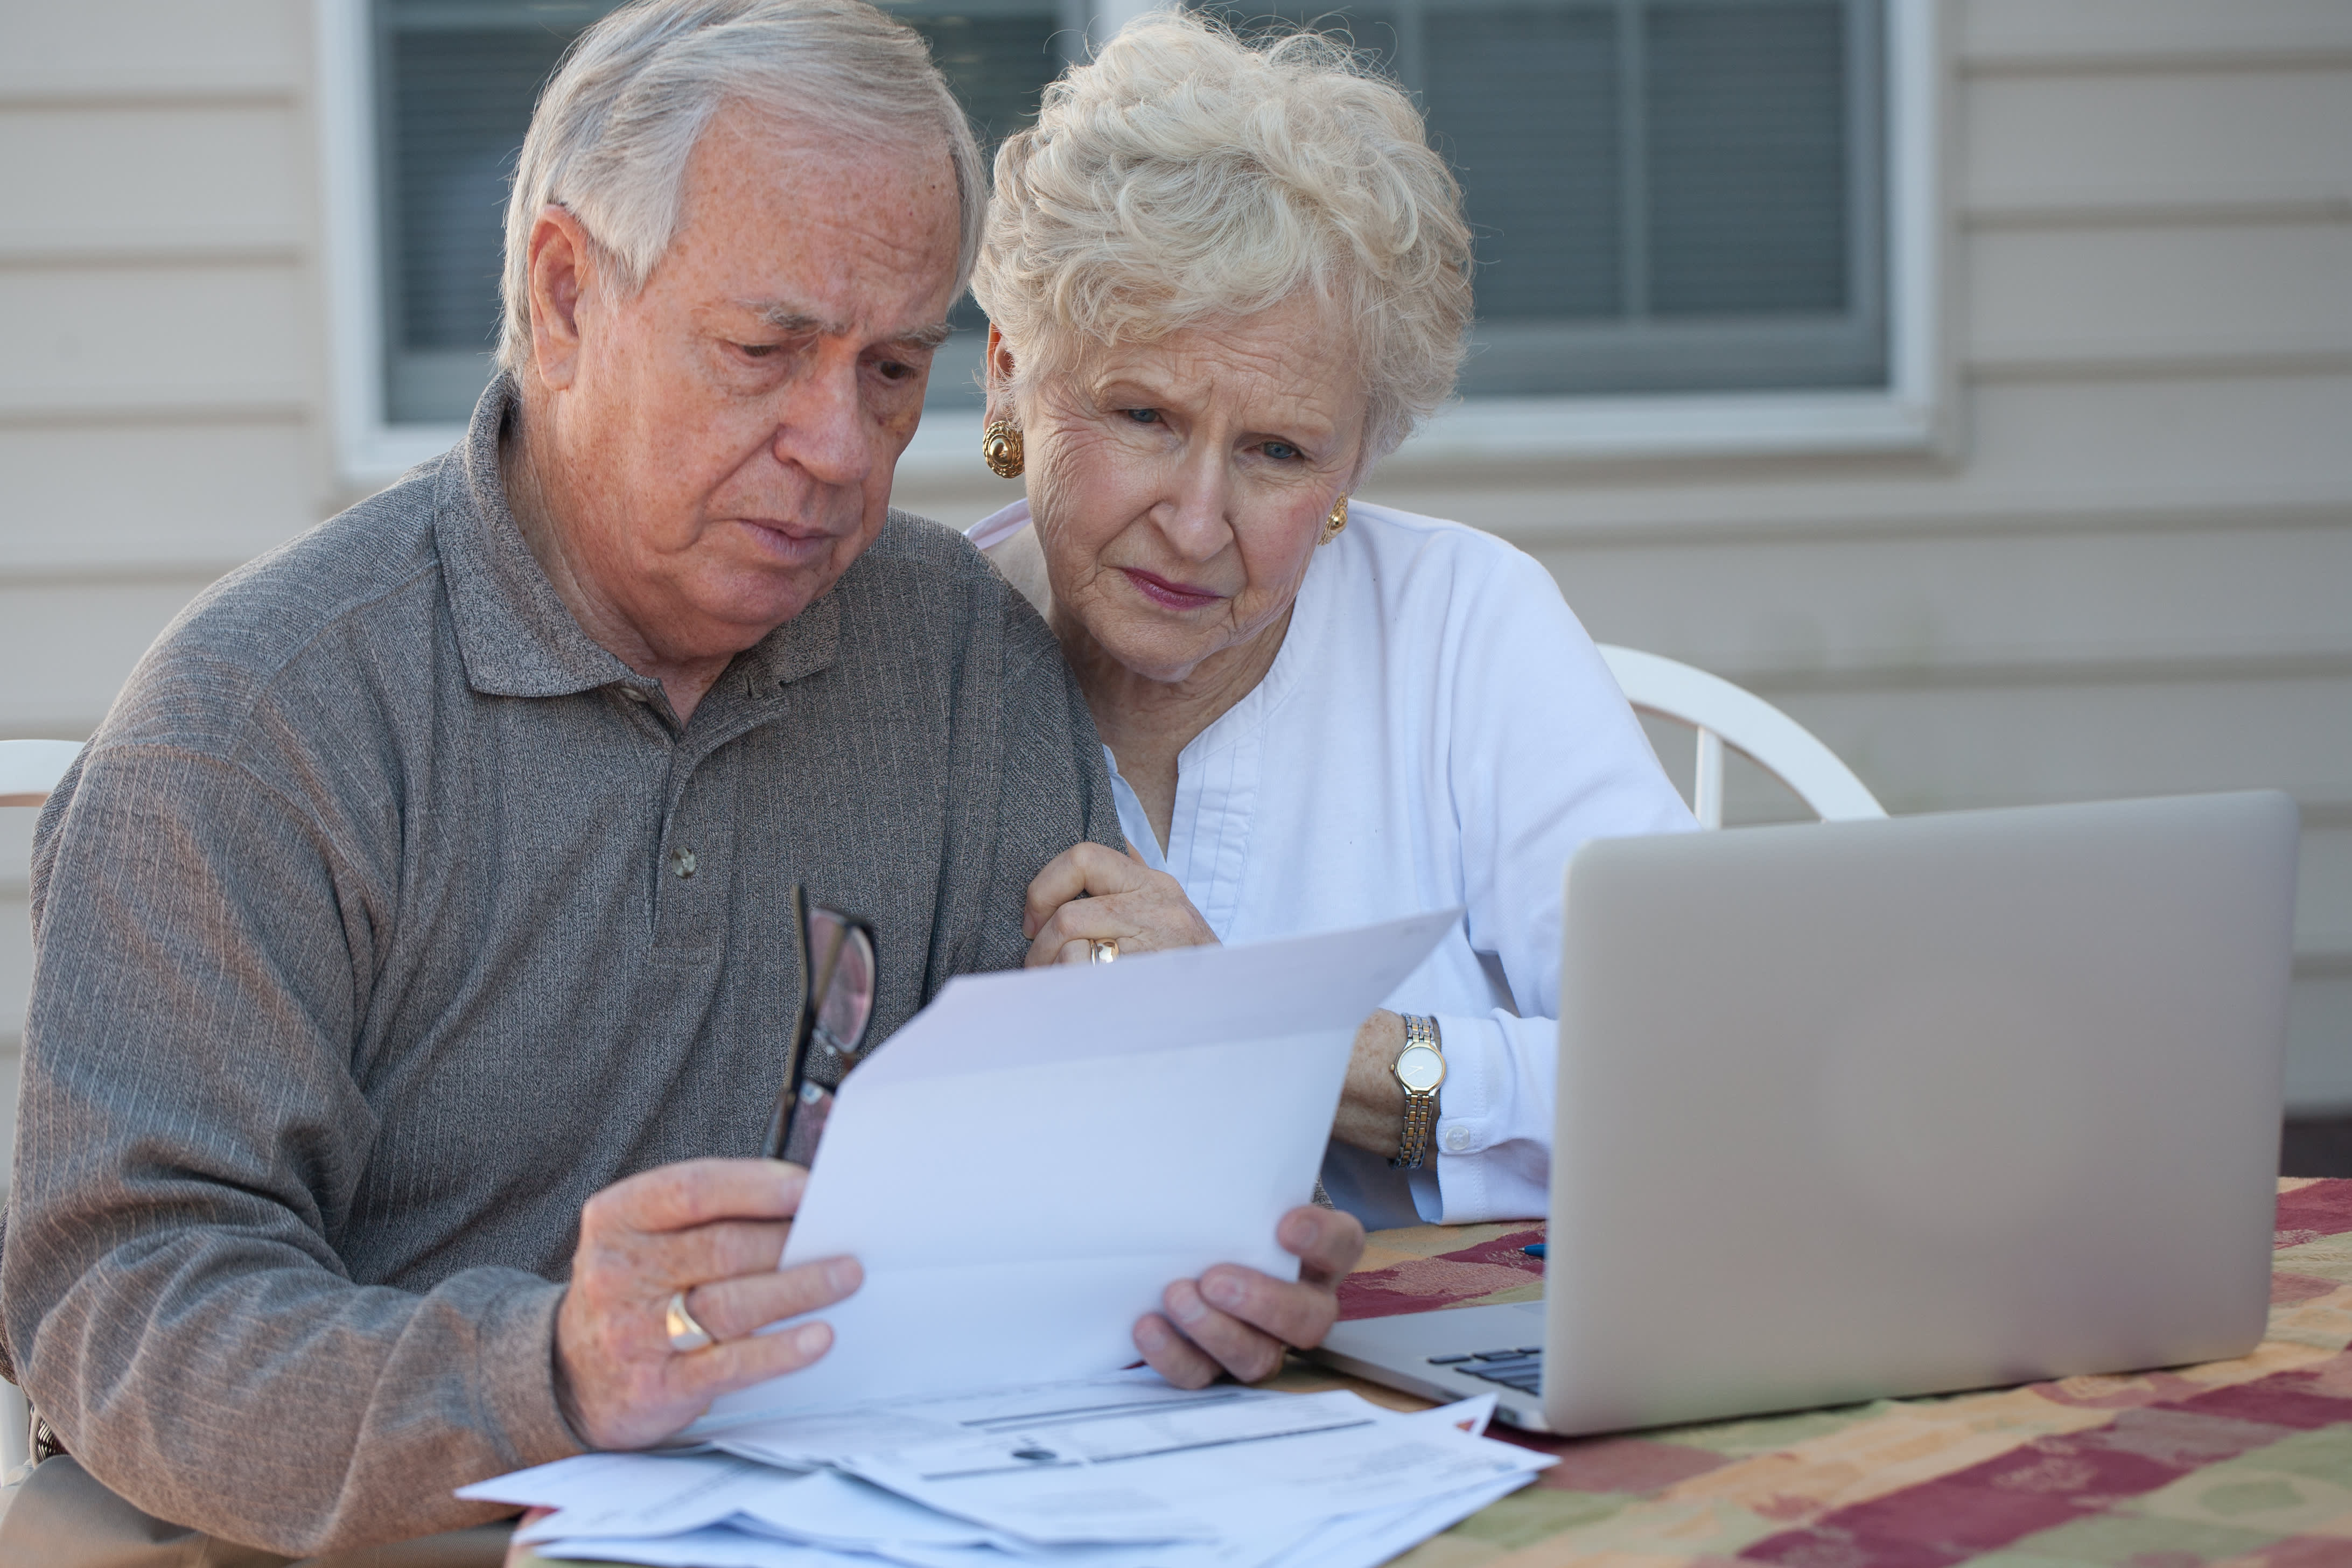 Social Security cost-of-living adjustment will give average retirees $92 more a month in 2022. How to estimate how much you'll get